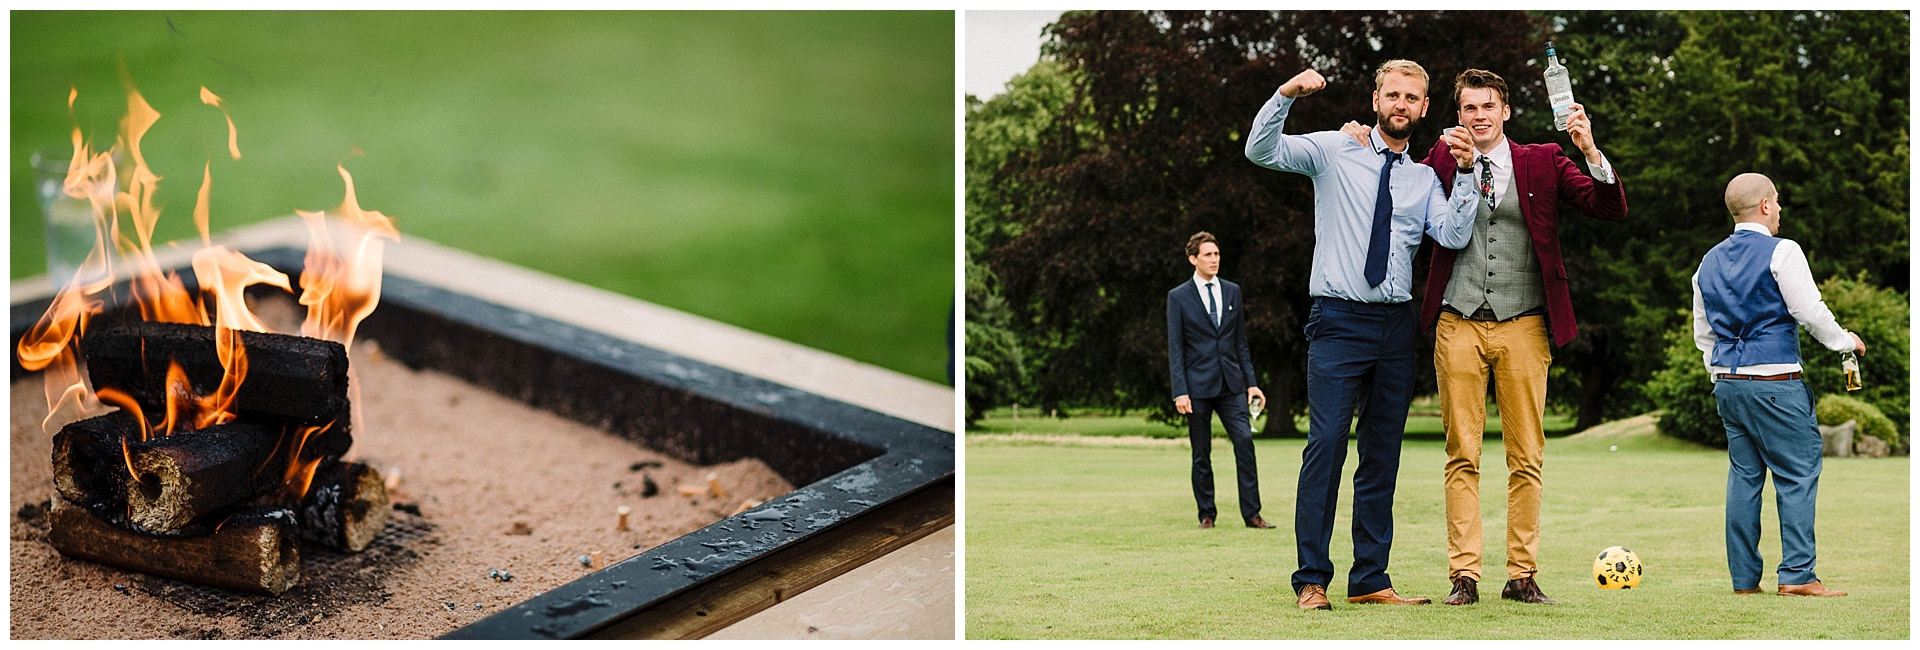 fire pit and wedding guests playing garden games at scampston hall